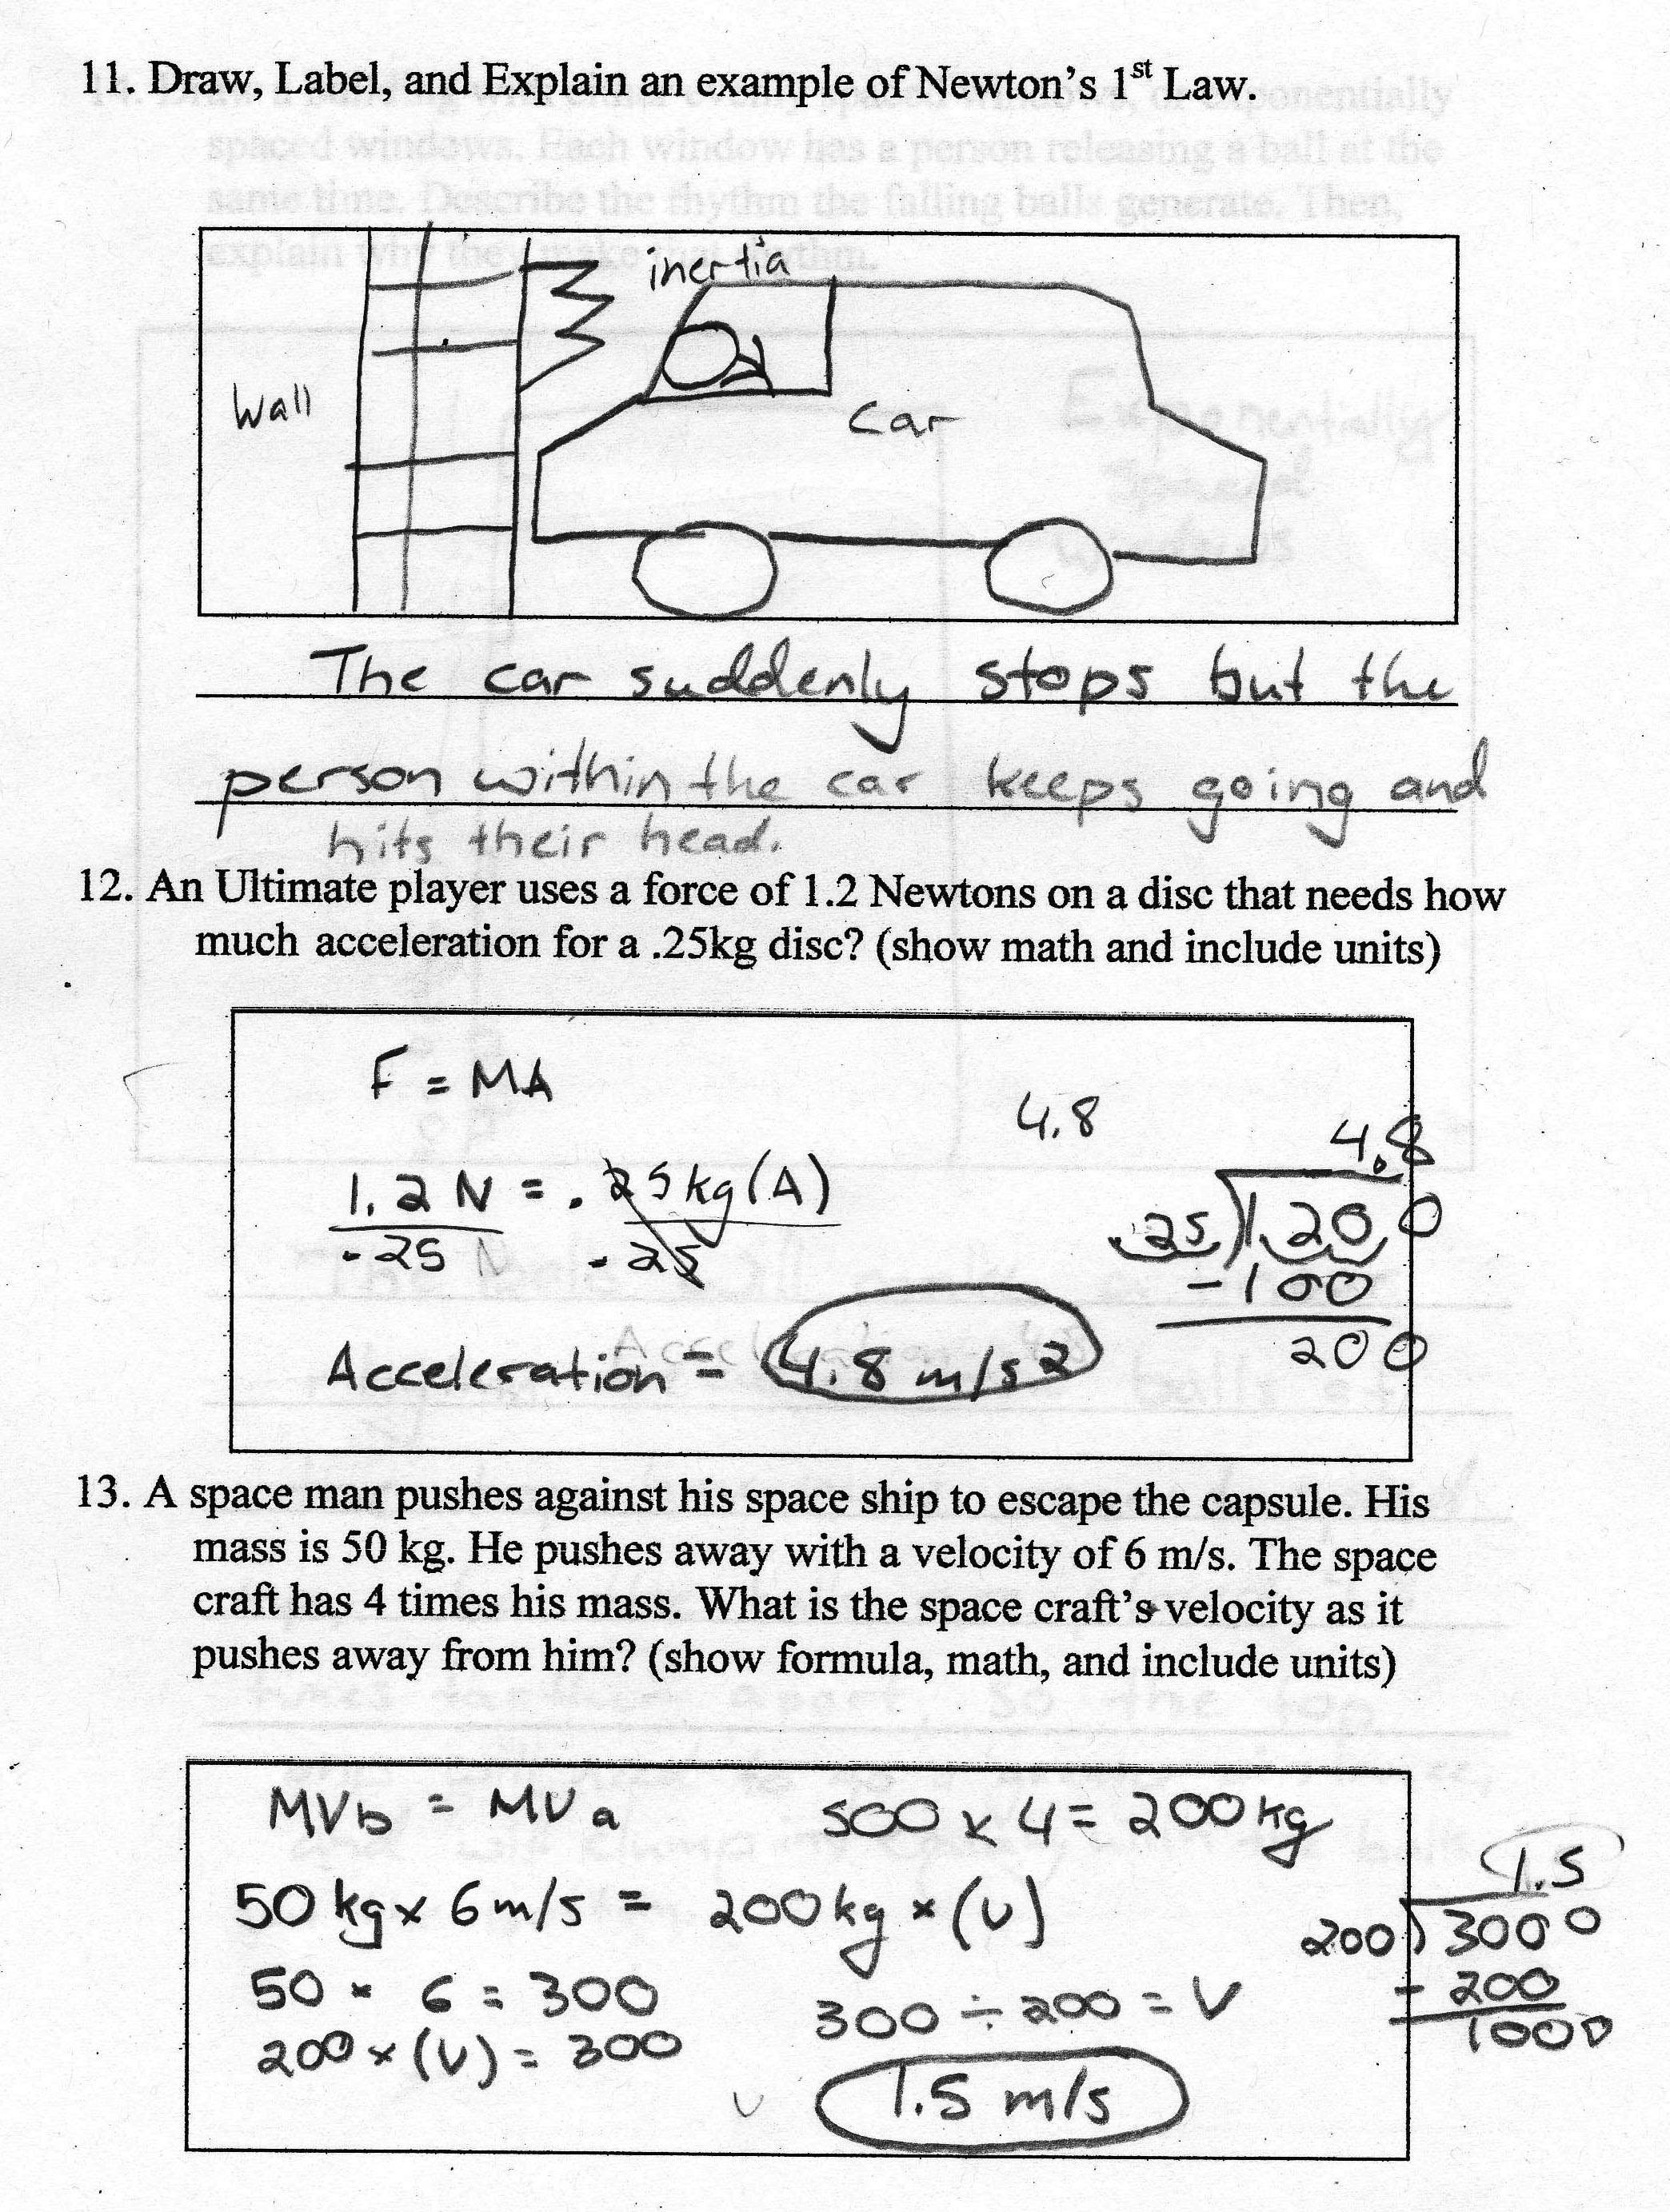 Physics P1 Grd 11 2014 Diagram Of 1975 E2ts Omc Trolling Motor And Adapter Group 24 Array 2nd Quarter 6th Grade Assignments Physical Science Rh Mrcrowder Us